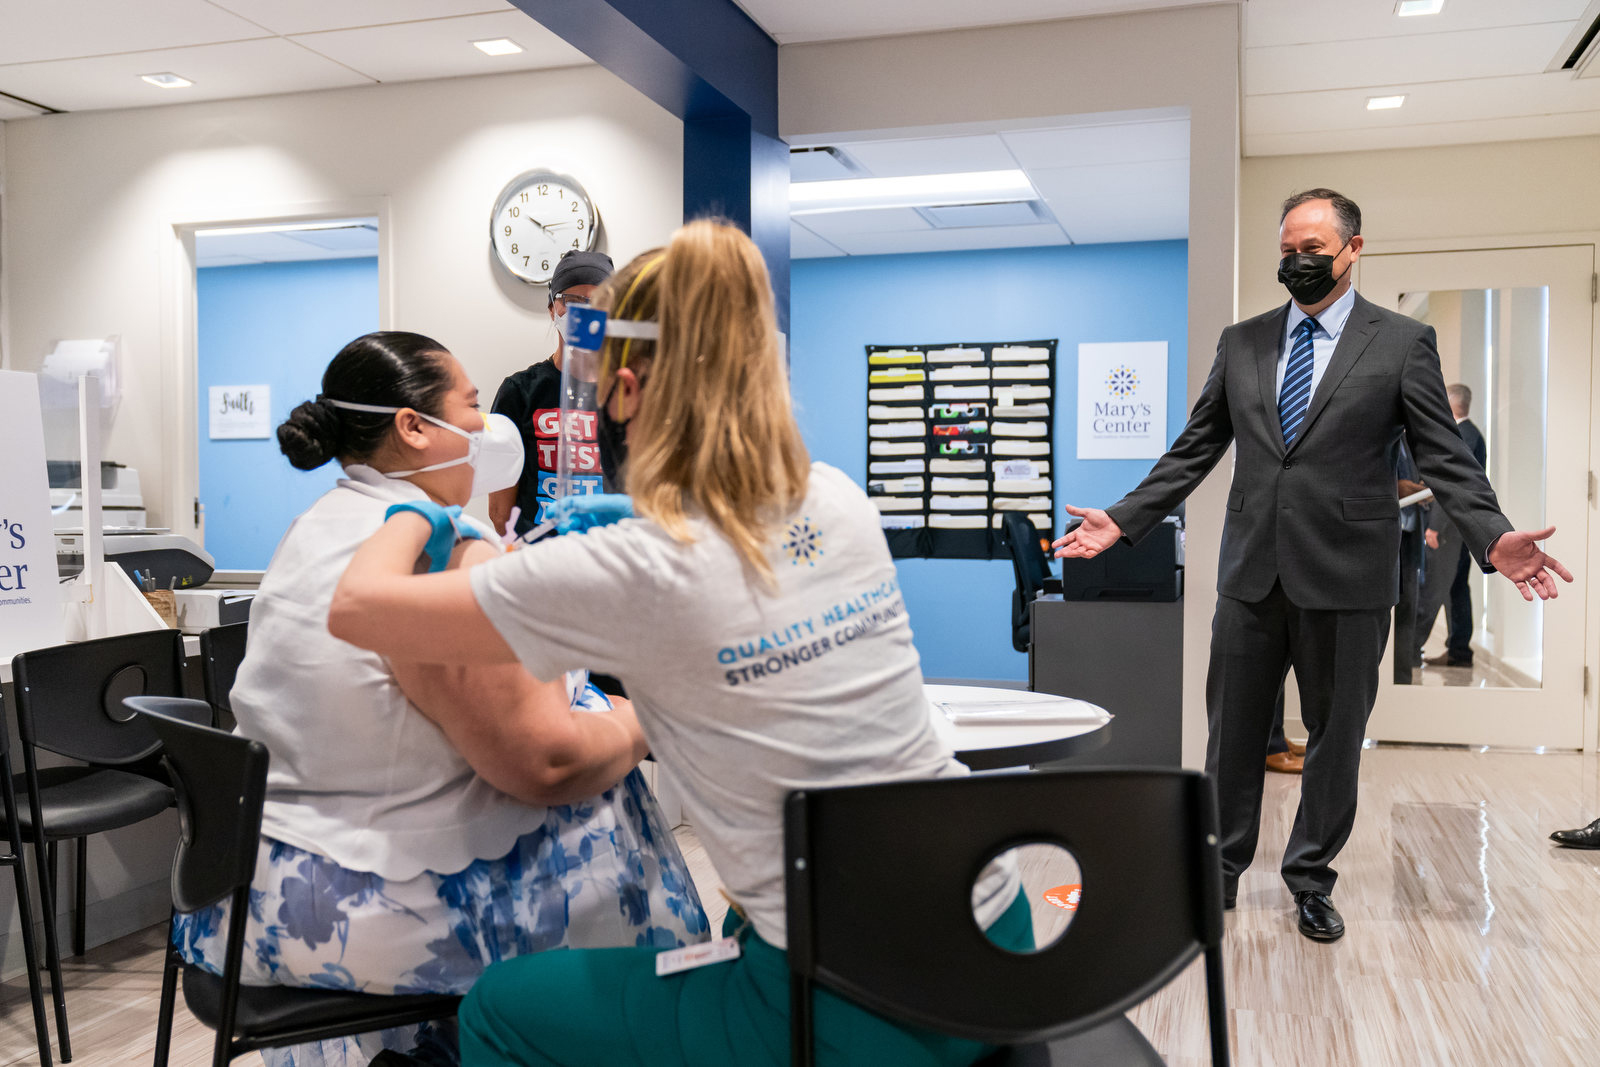 Second Gentleman Douglas Emhoff looks on as Jessica Palacios receives a COVID-19 vaccine from nurse Eva Sweeny Tuesday, March 30, 2021, at Mary's Center in Silver Spring, Maryland.